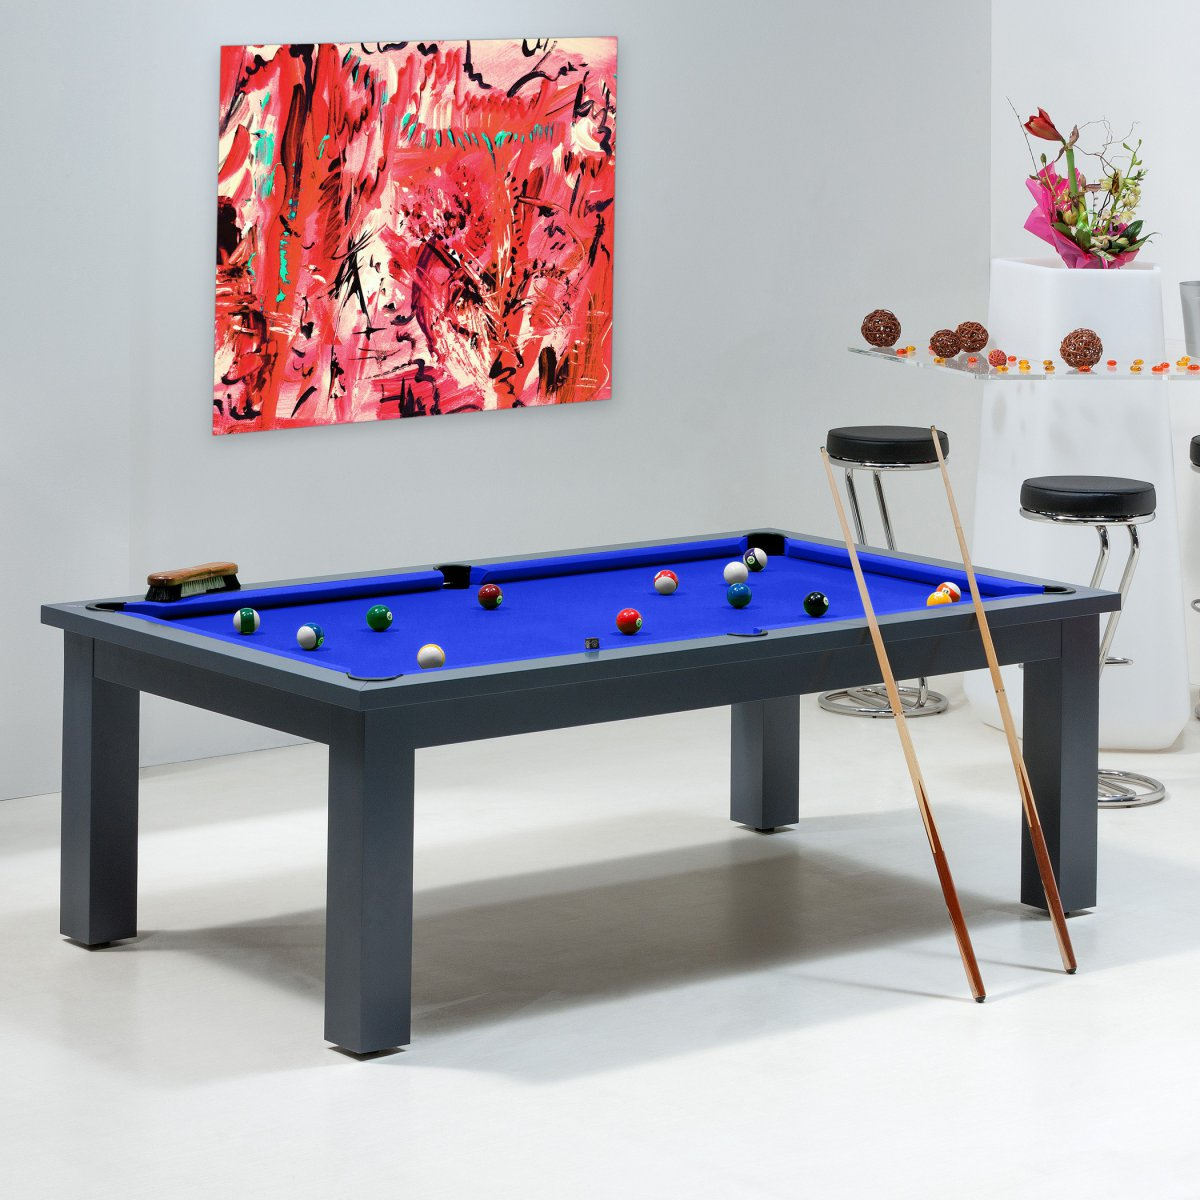 billard table de billard convertible billard washington. Black Bedroom Furniture Sets. Home Design Ideas